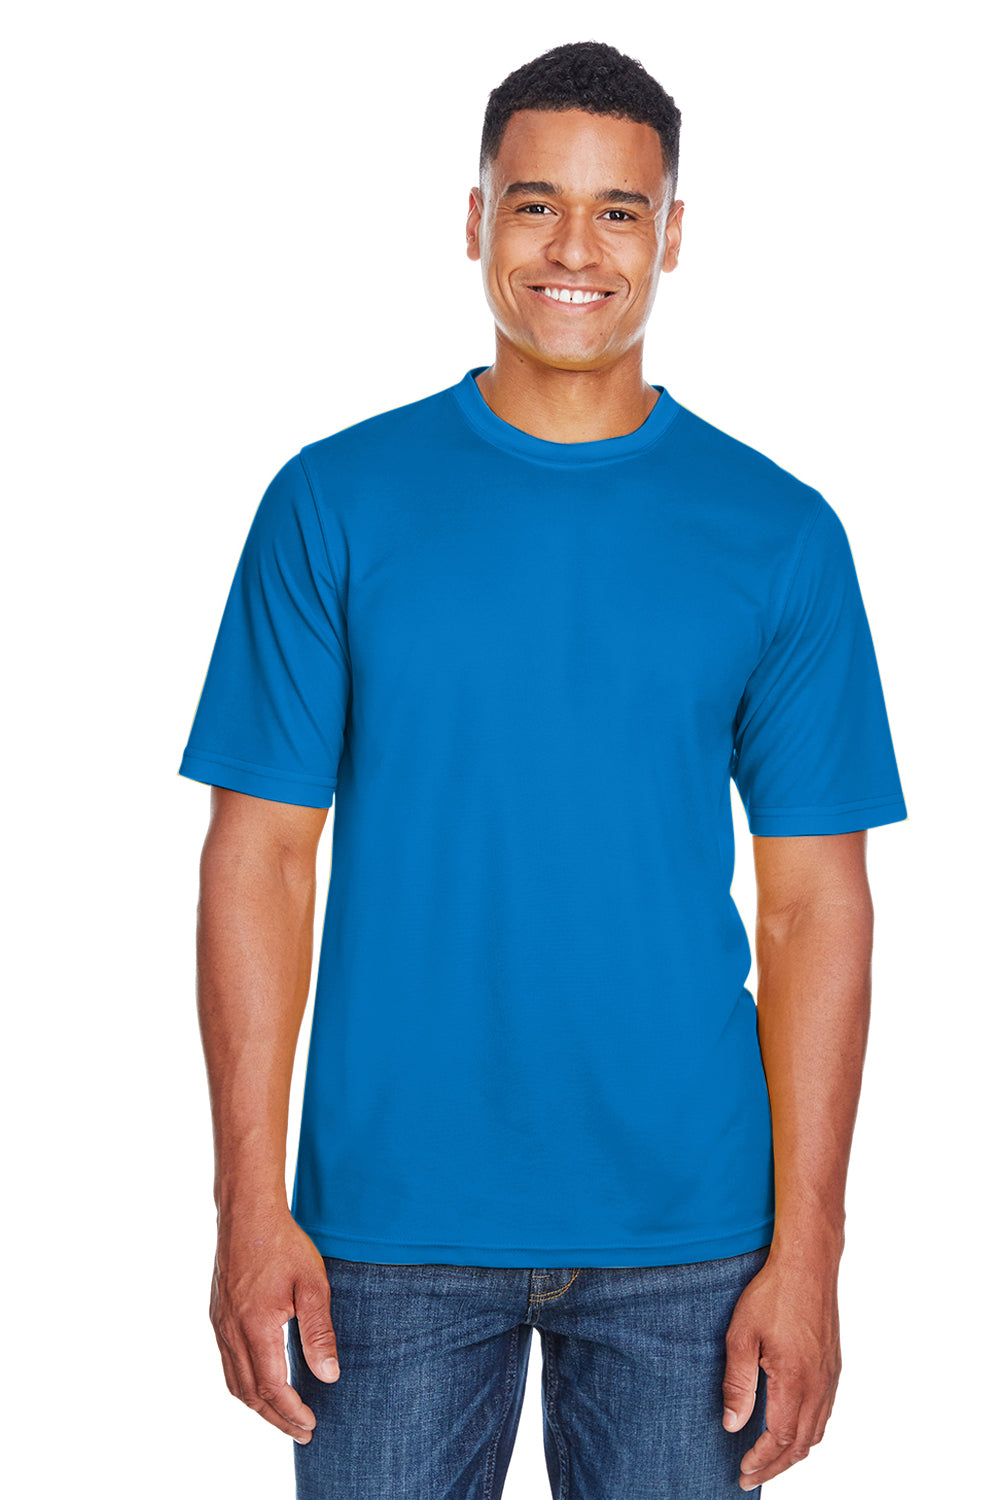 Core 365 88182 Mens Pace Performance Moisture Wicking Short Sleeve Crewneck T-Shirt Royal Blue Front